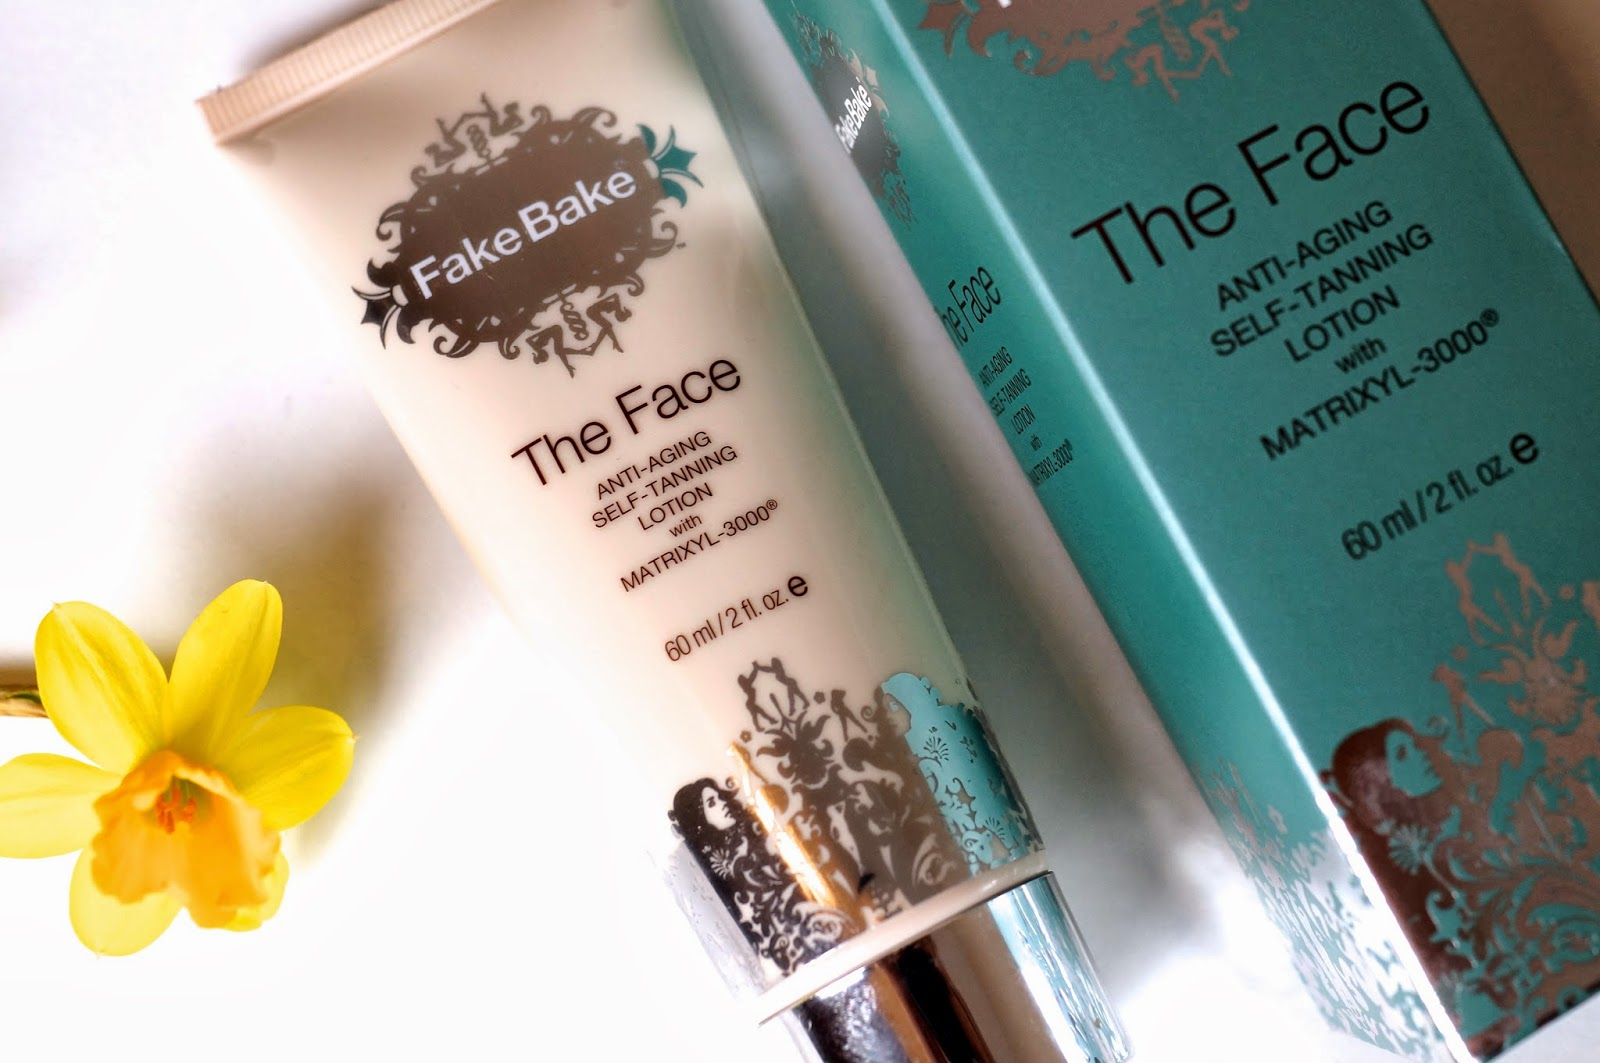 Fake Bake The Face review